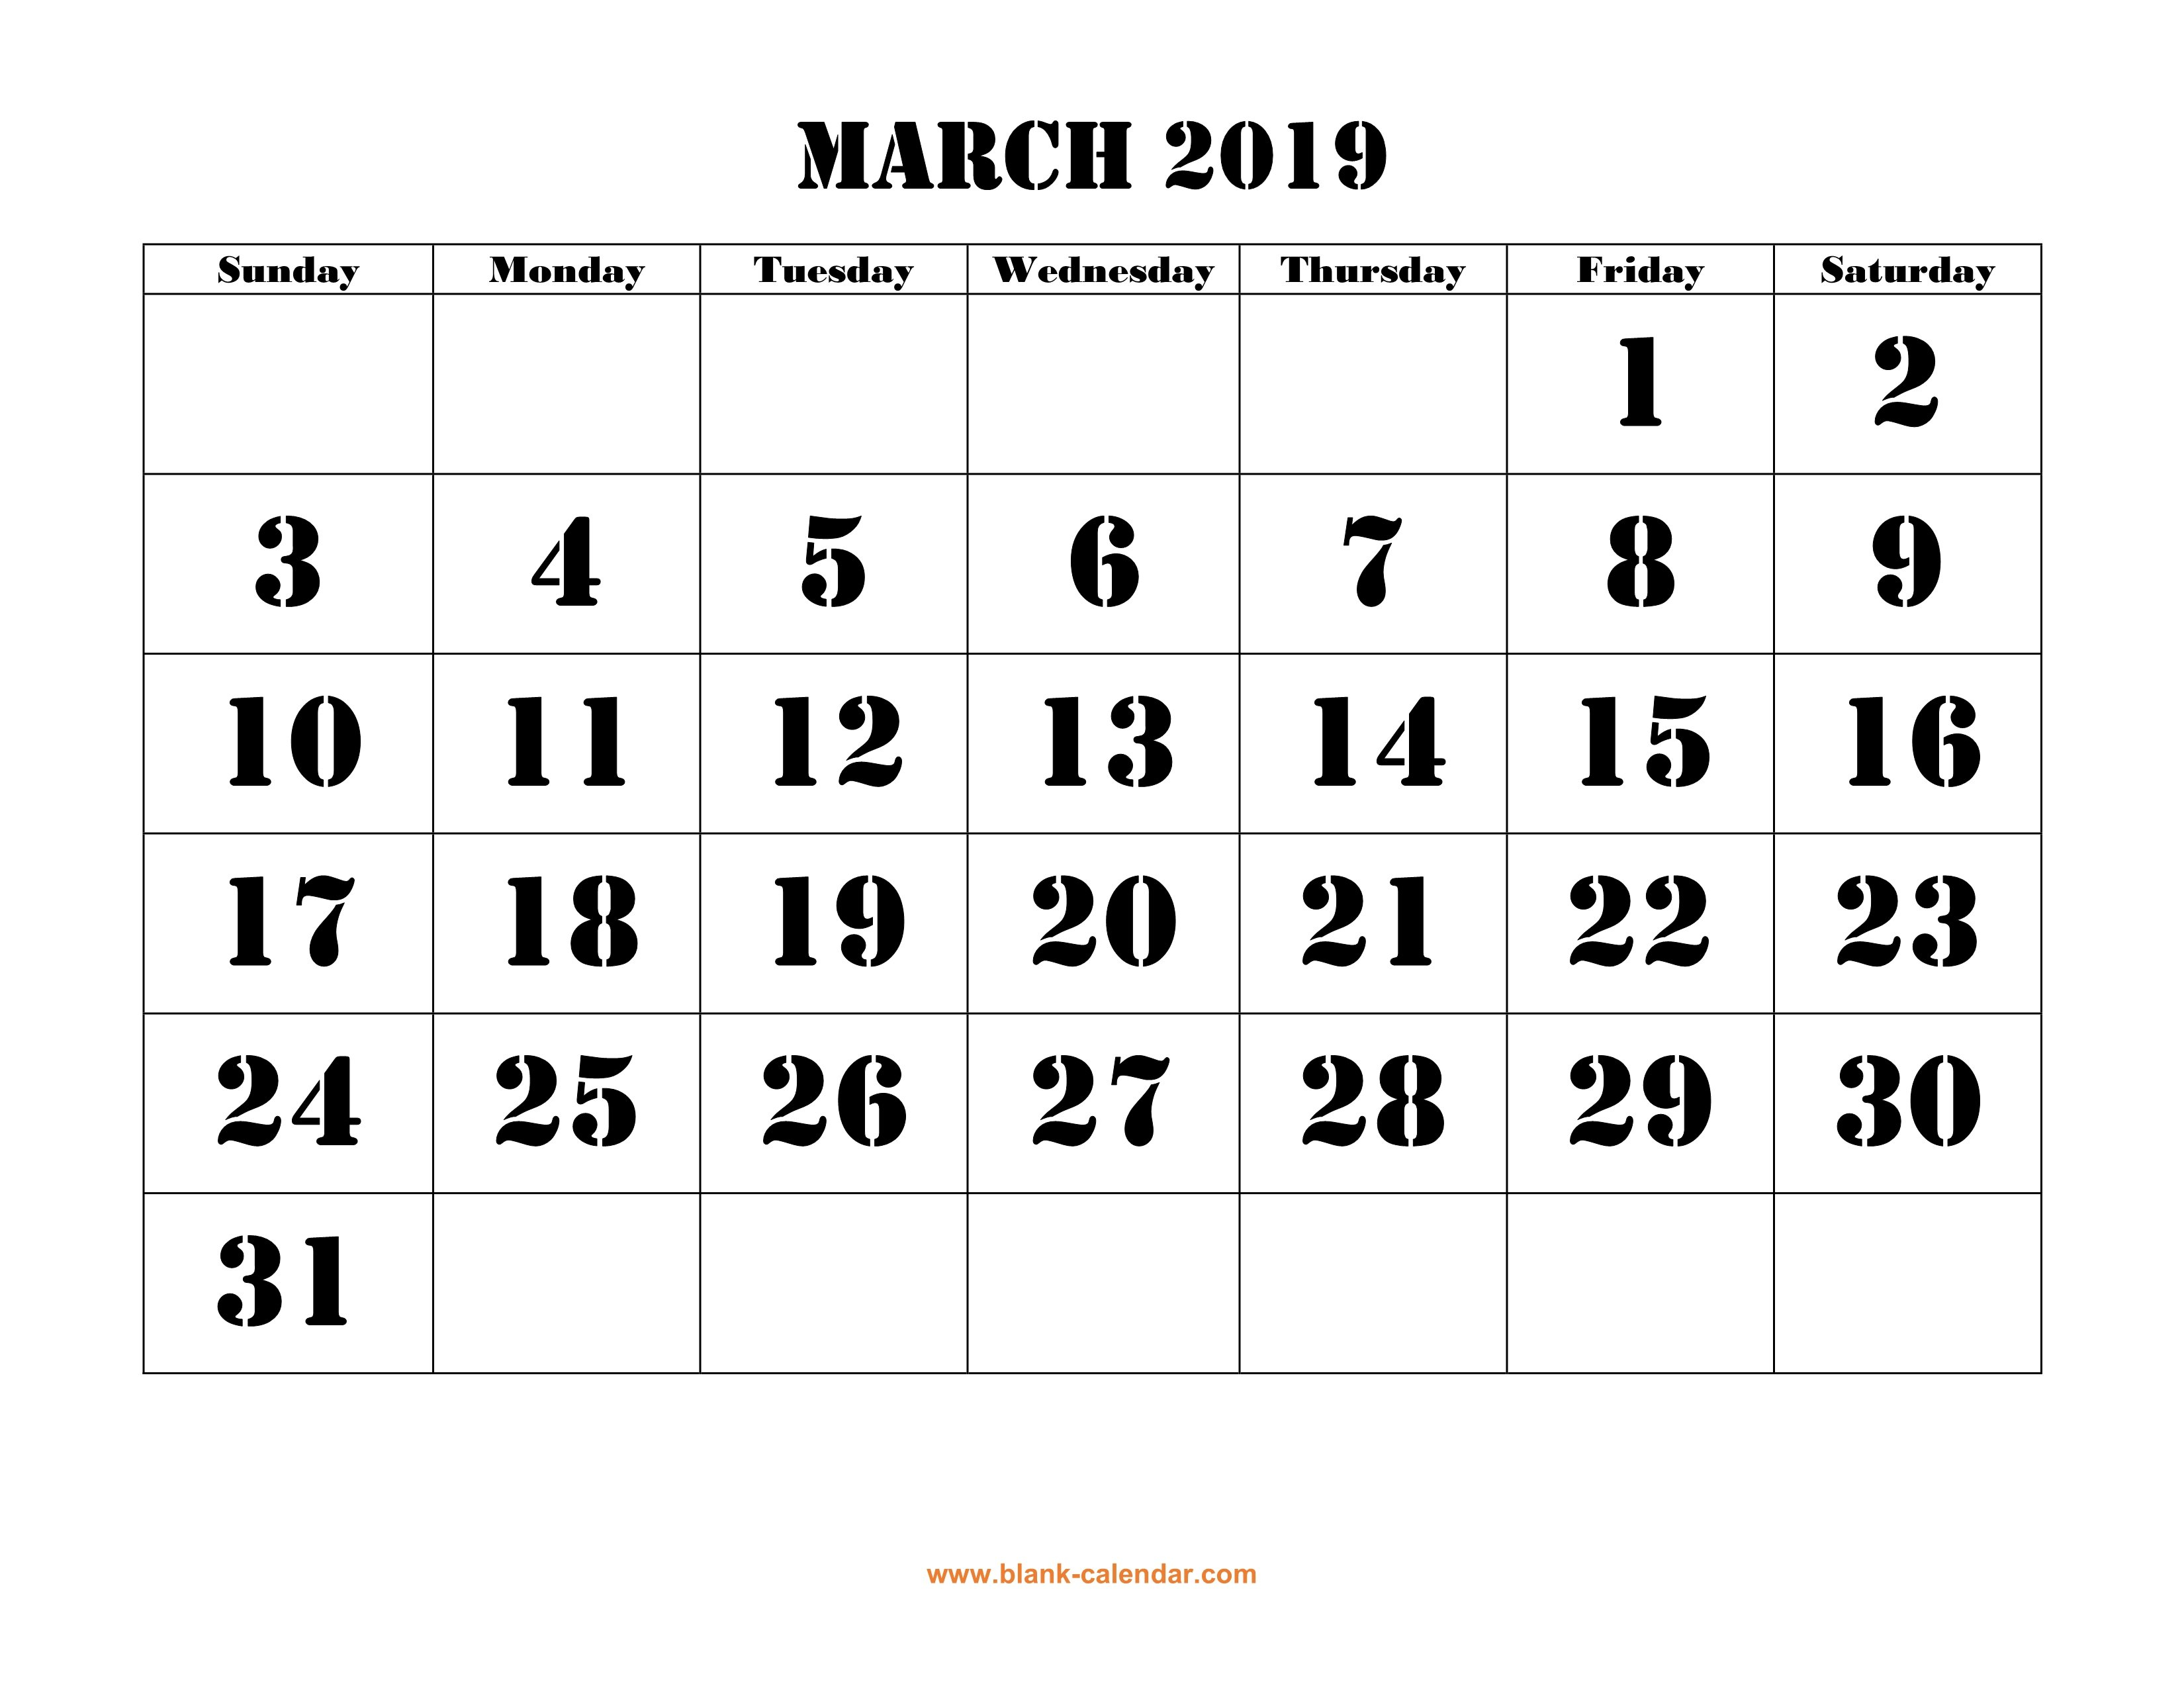 Free Download Printable March 2019 Calendar, Large Font Design Calendar 2019 Large Printable